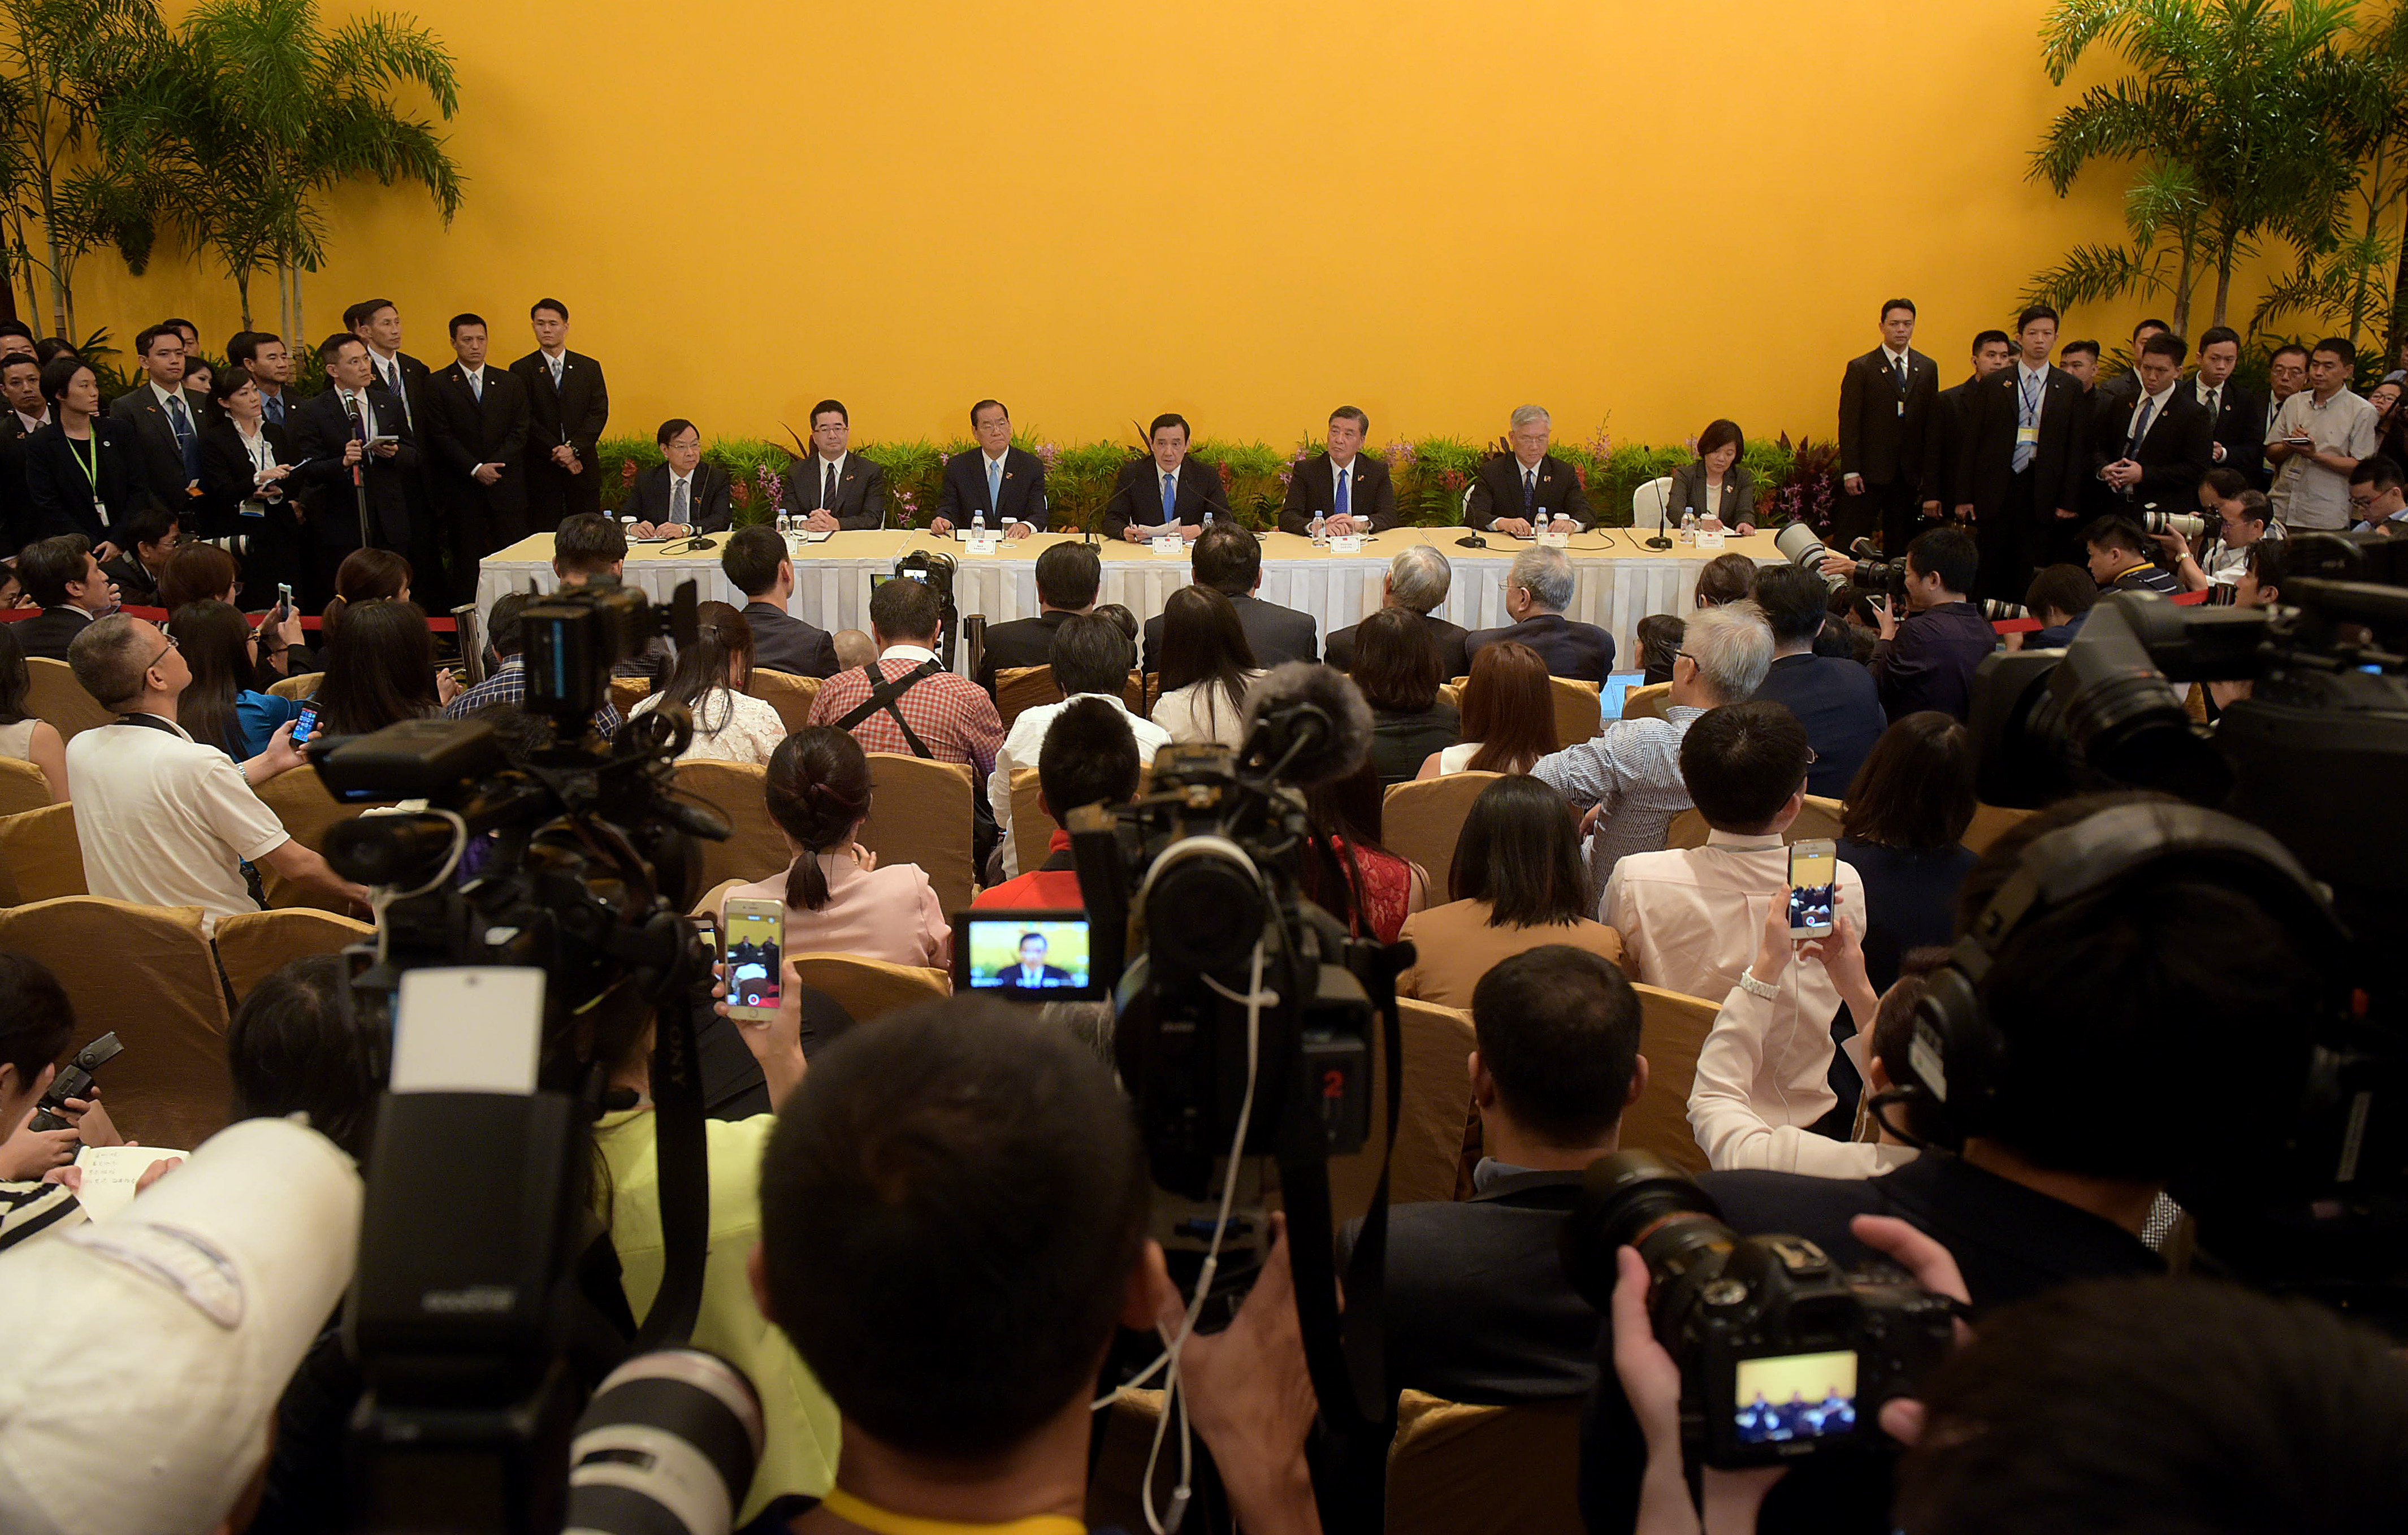 Taiwanese President Ma Ying-jeou, center, speaks during a press conference at the Shangri-la Hotel in Singapore, Nov. 7, 2015.